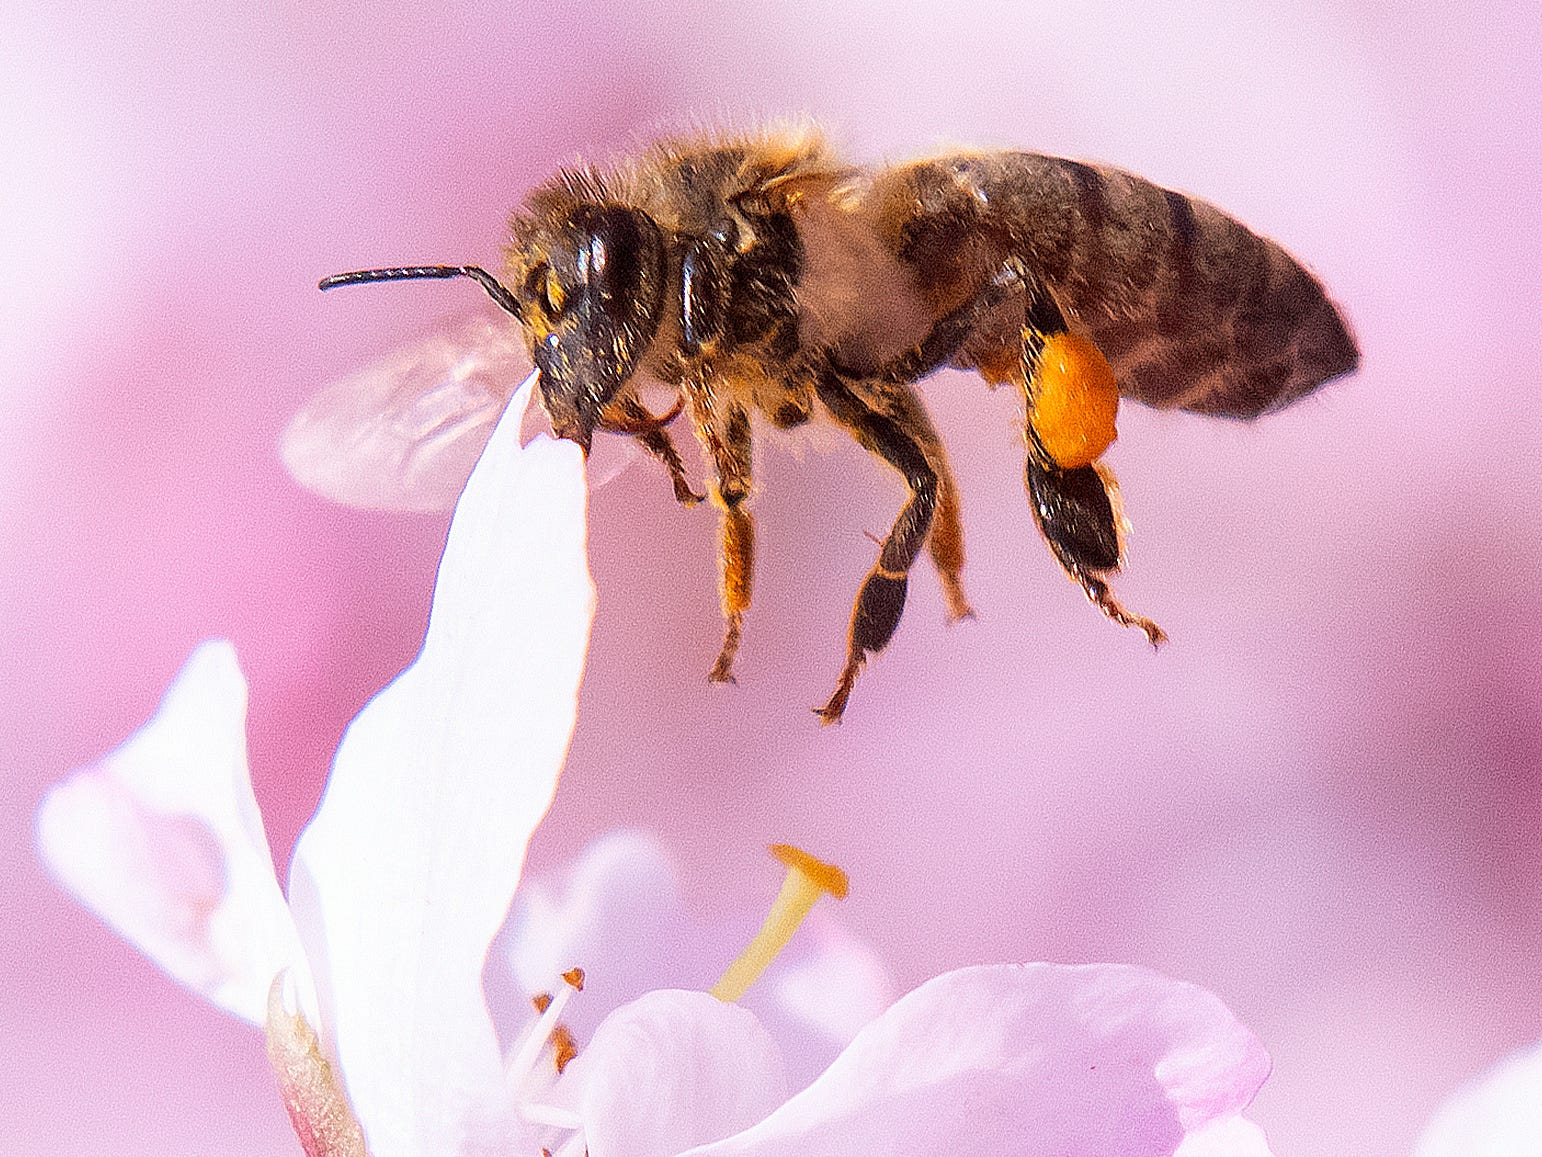 A bee lands at blossoms of flowering cherry trees during springlike temperatures in Erfurt, Germany, Sunday, April 7, 2019.